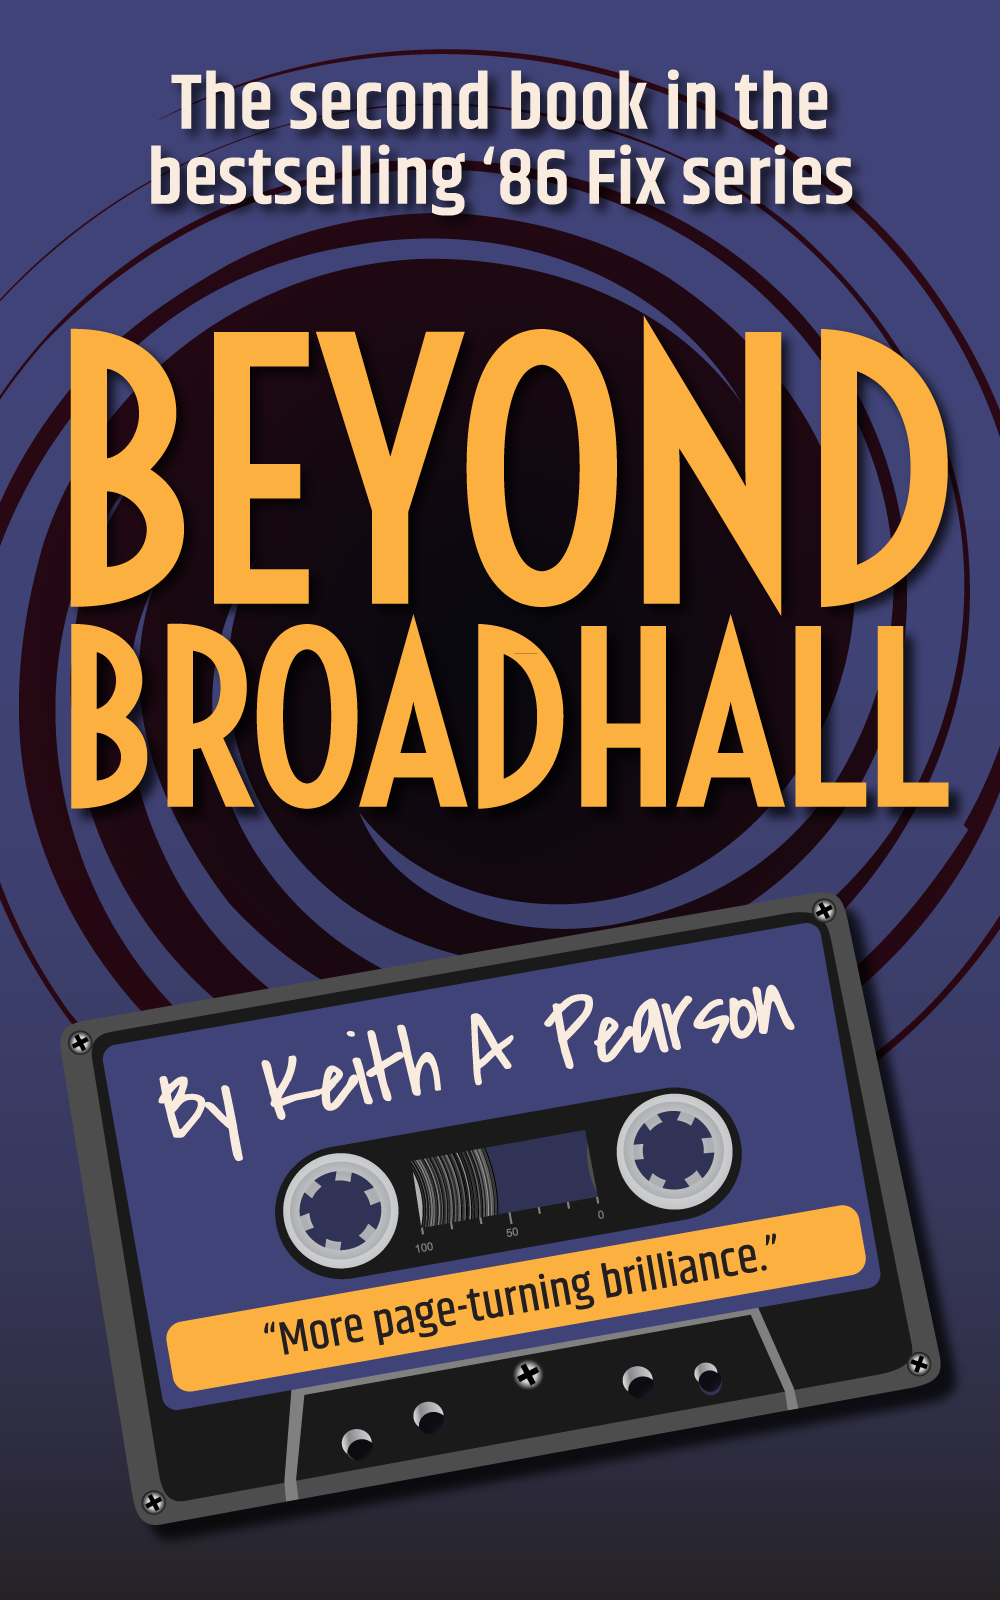 Keith A. Pearson - Beyond Broadall Book